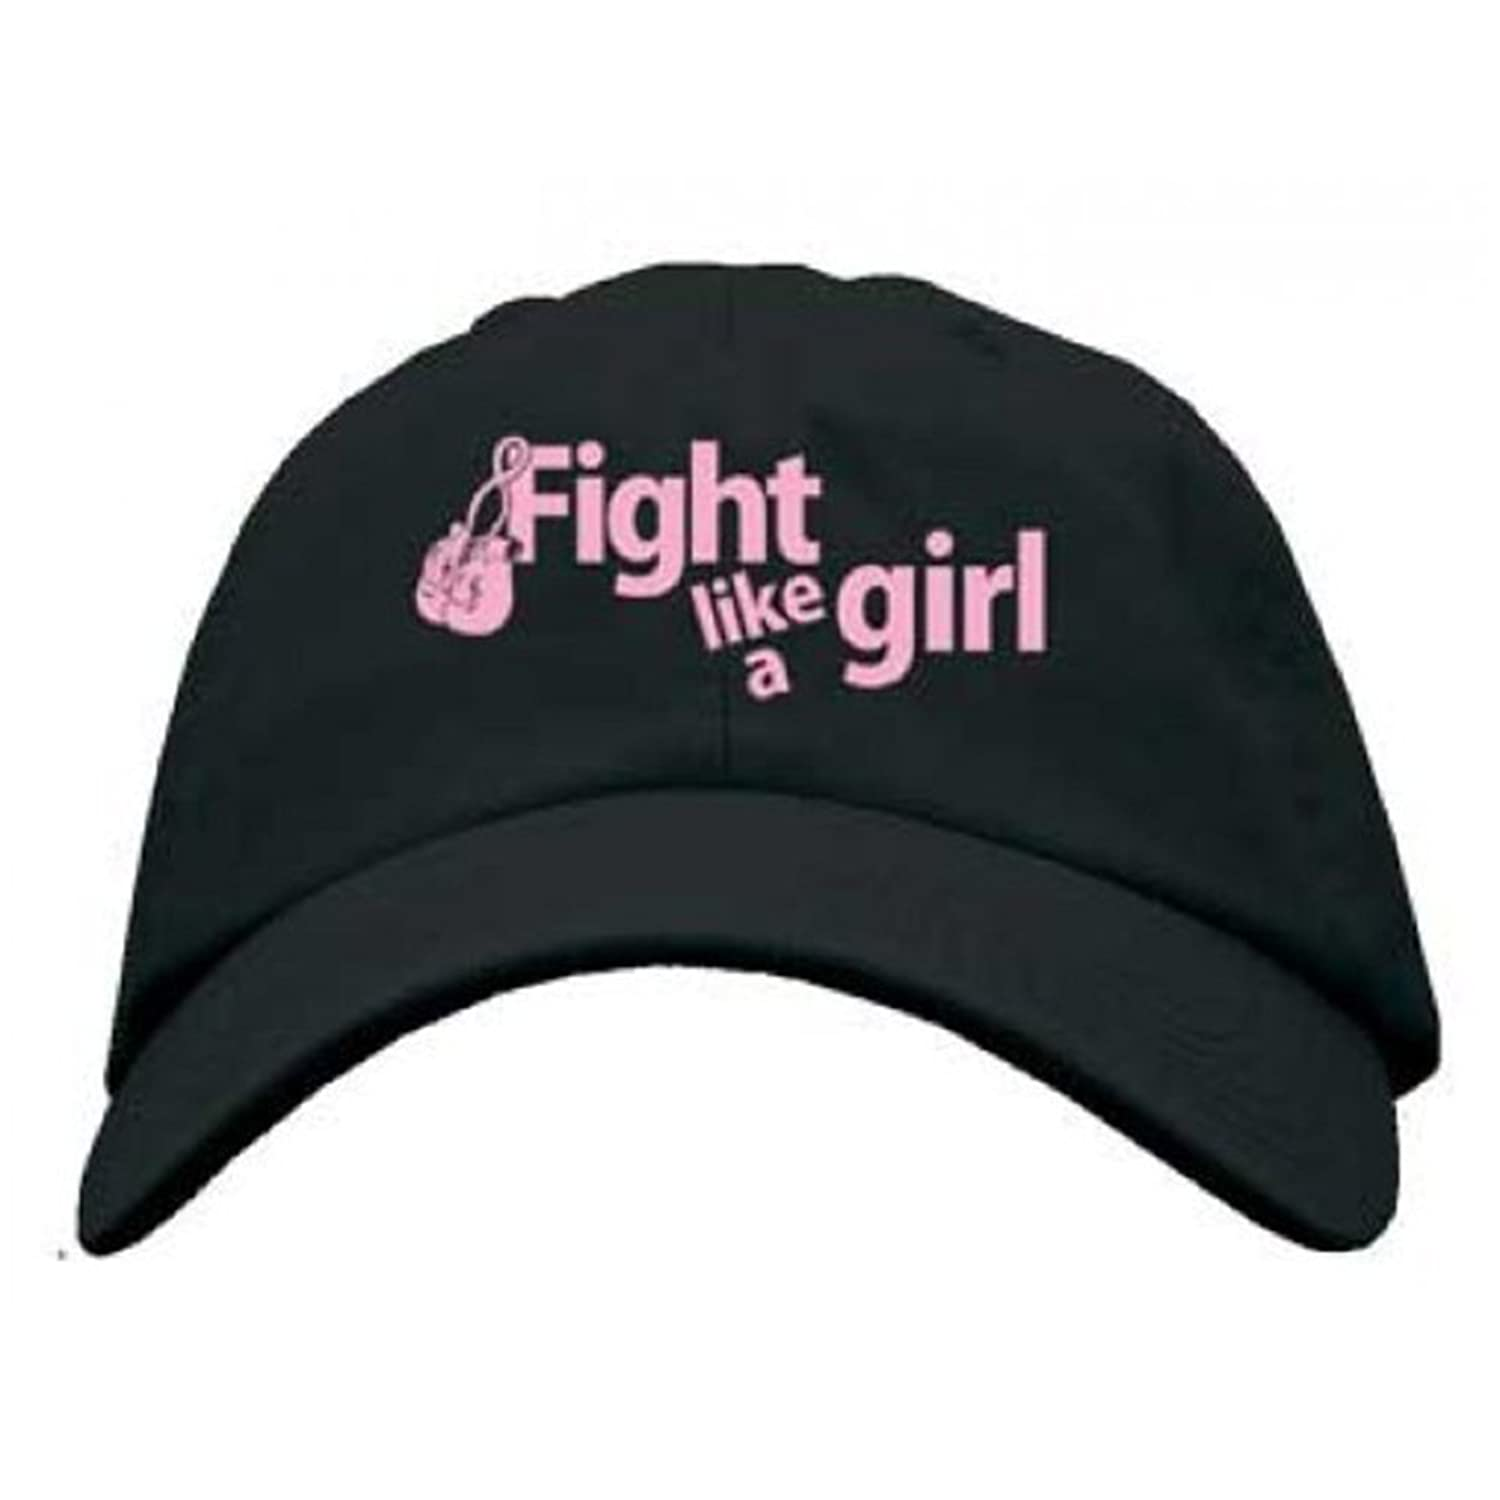 Fight Like a Girl Embroidered Cotton Breast Cancer Awareness Hat - Black